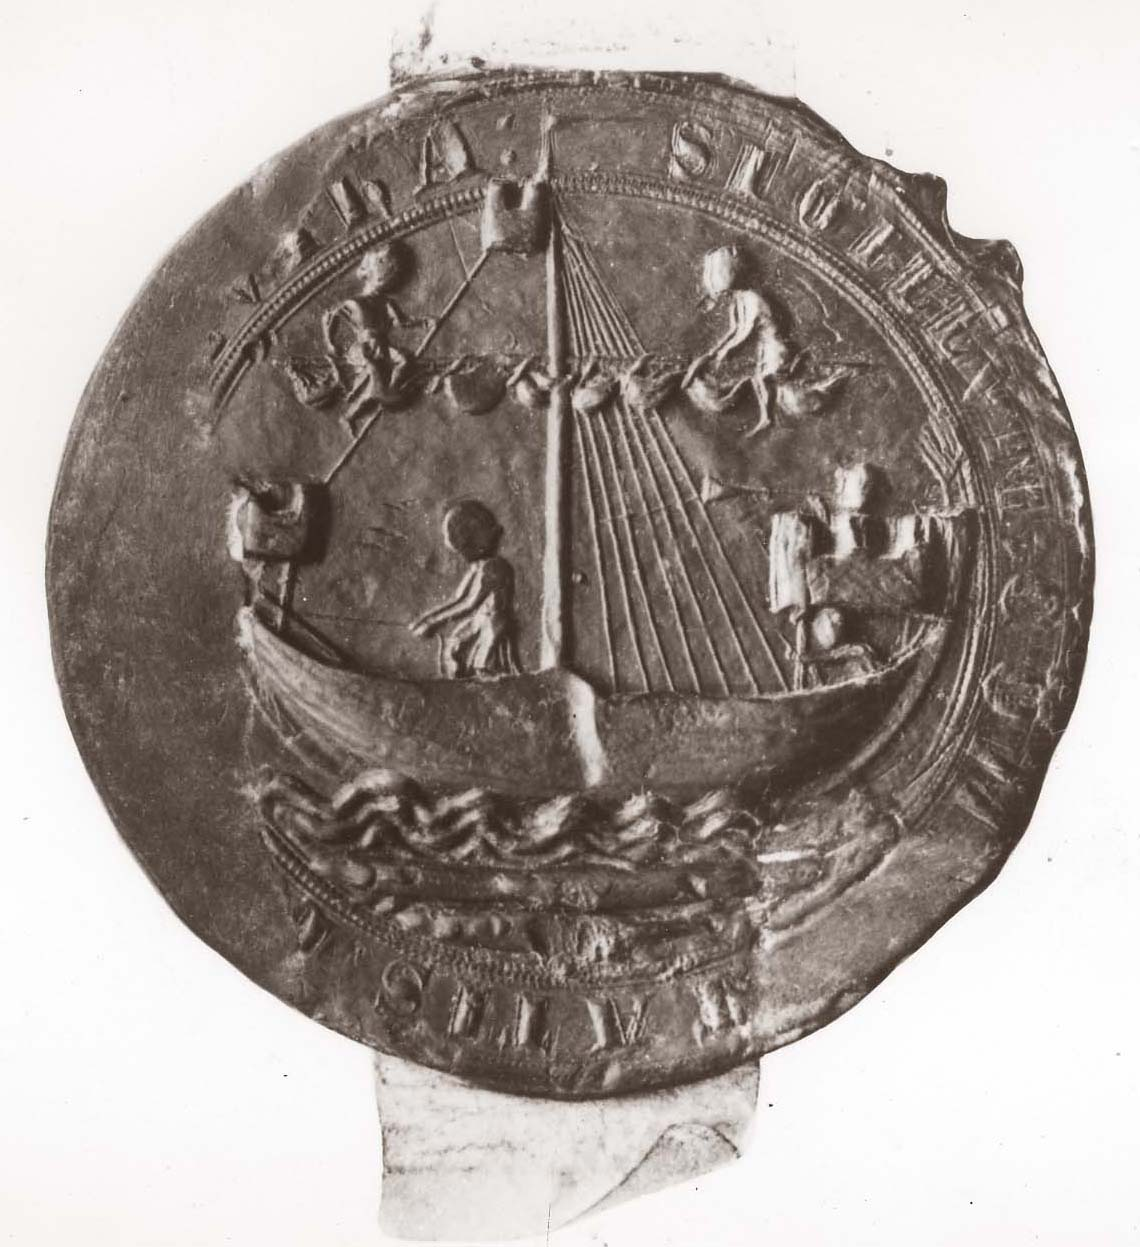 Men sailing a ship on the seal of the Borough of Yarmouth